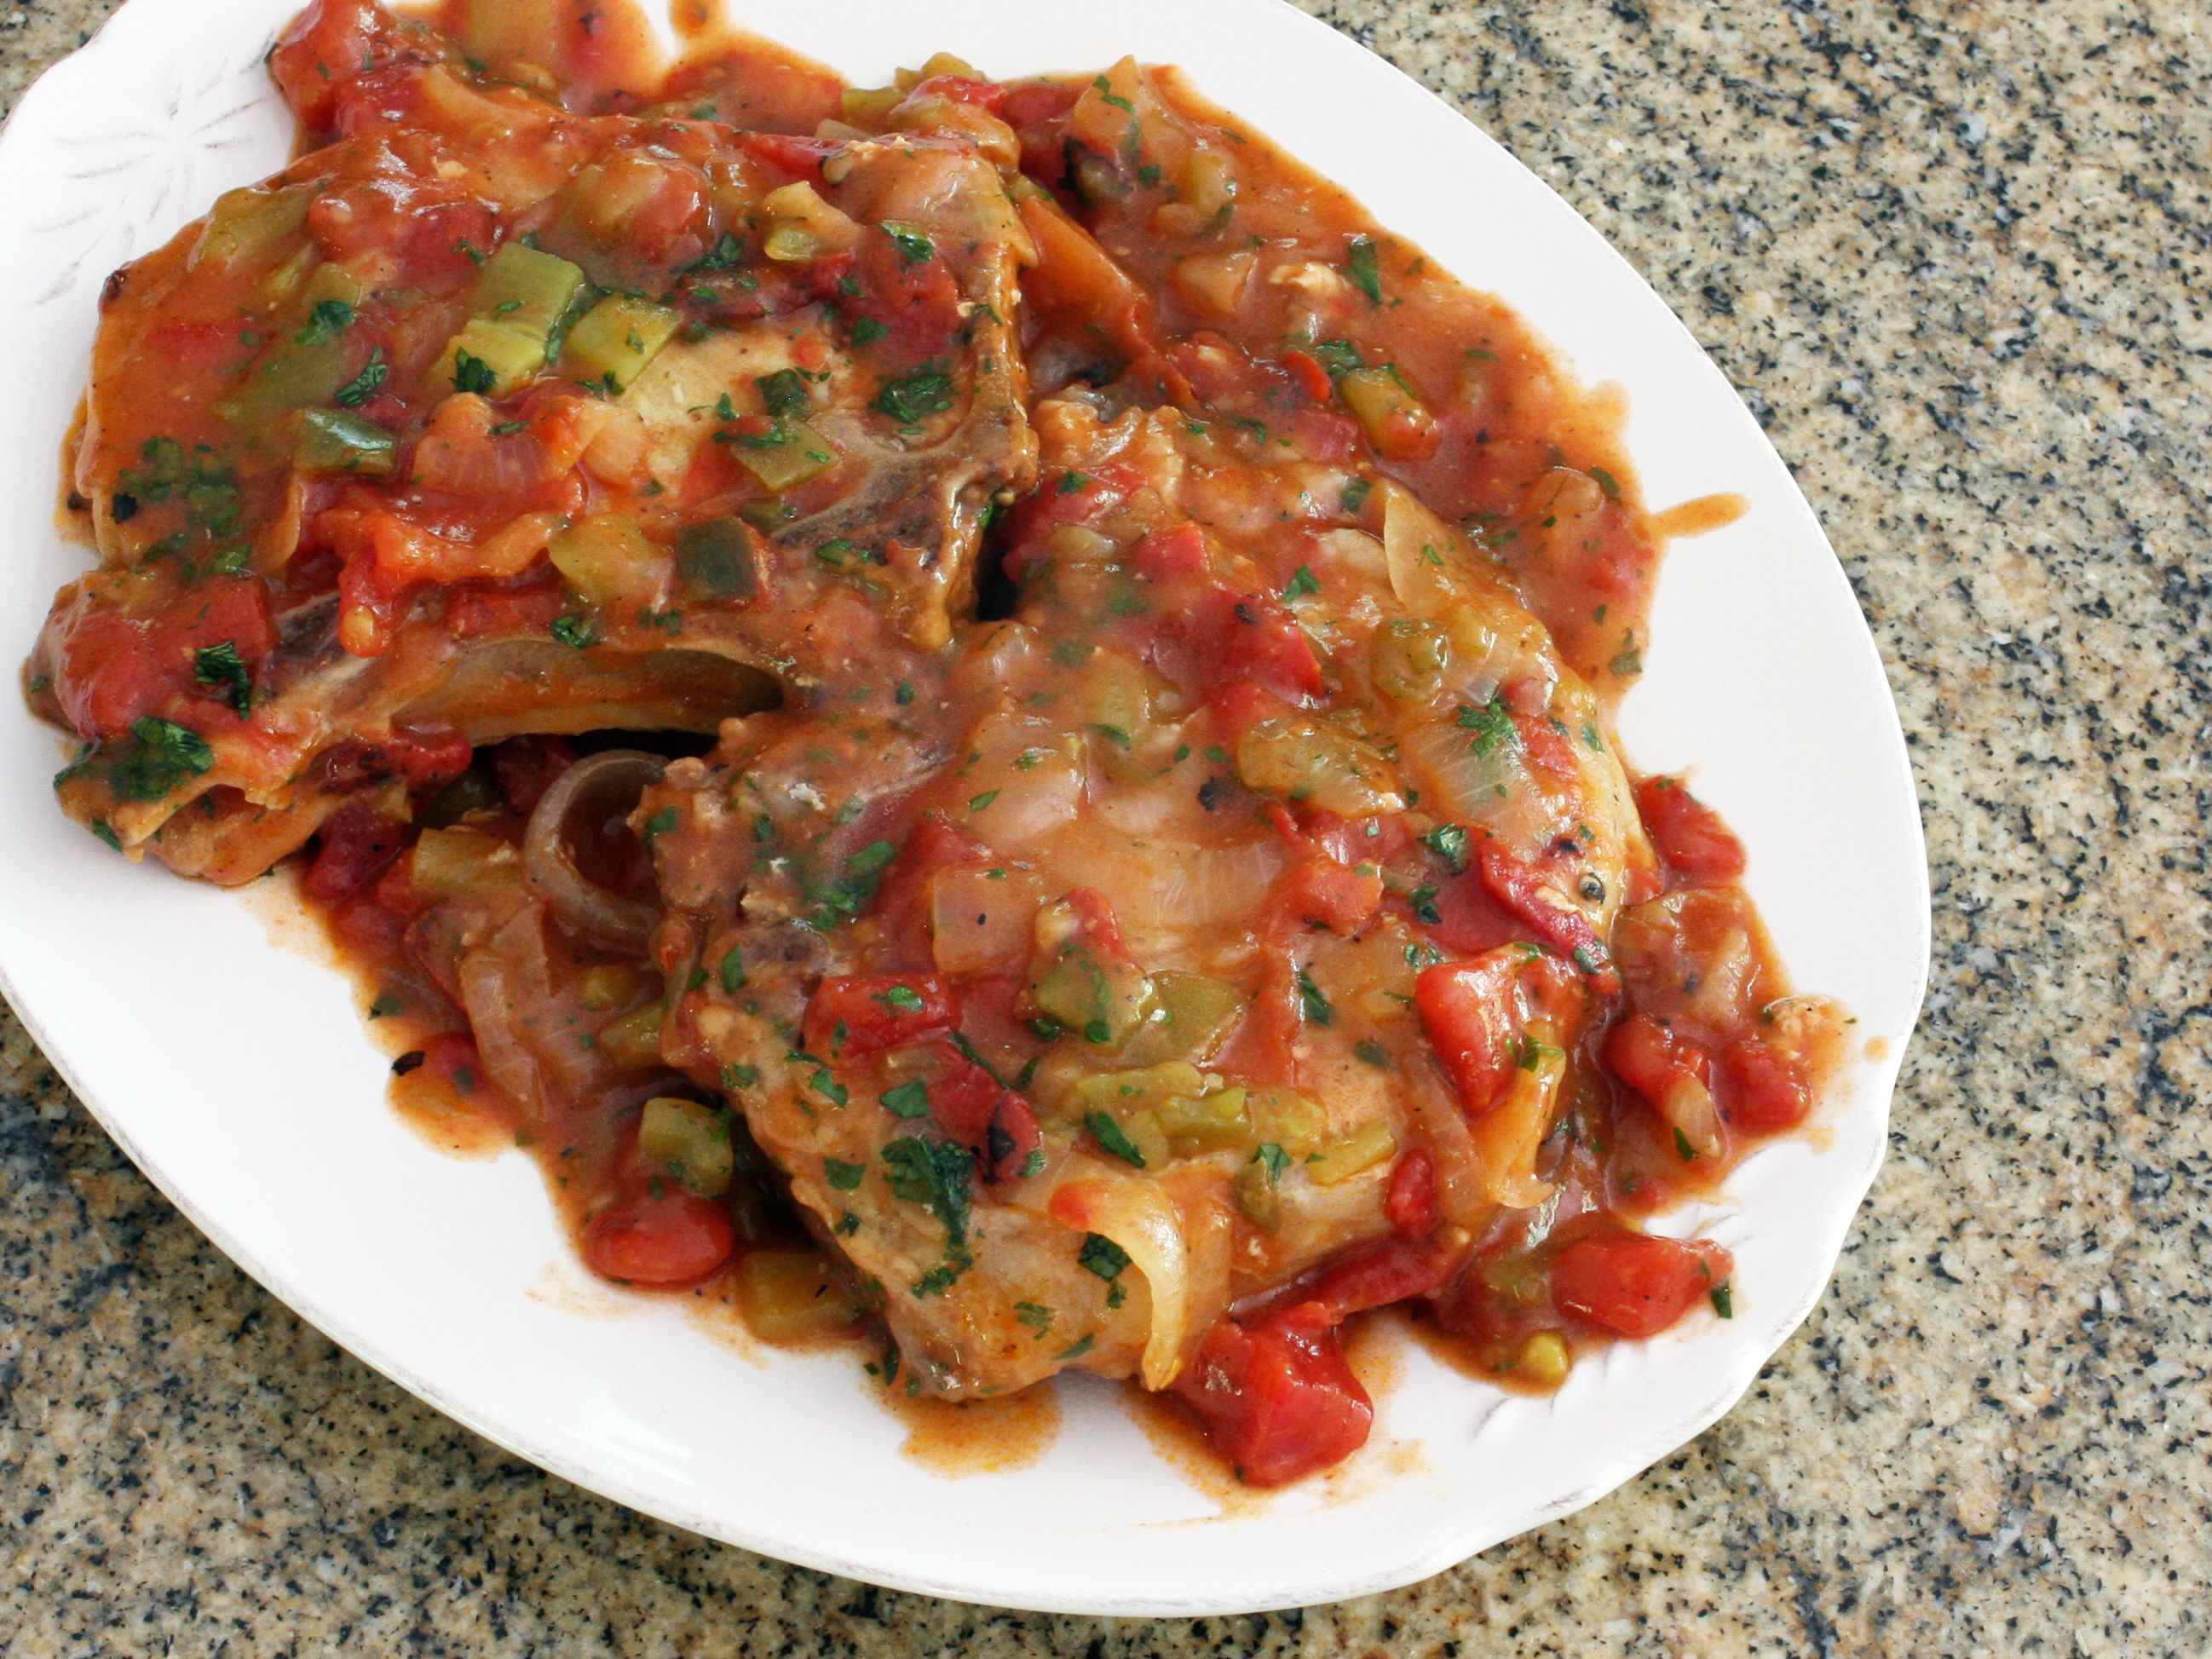 recipe for pork chops with tomatoes and peppers Spicy Shoulder Pork Chops With Tomatoes and Peppers